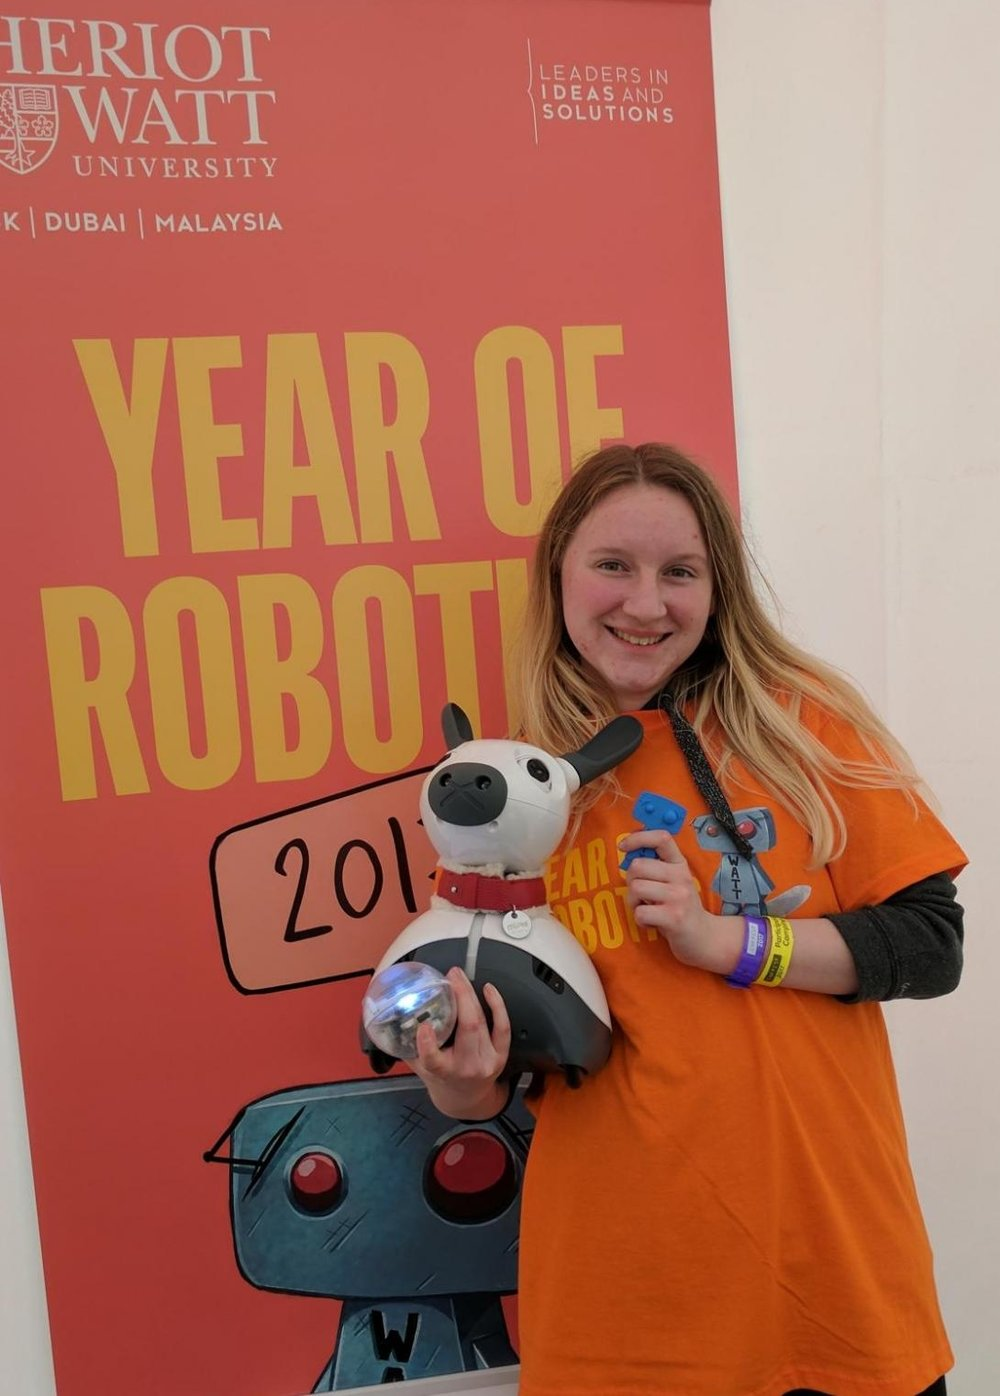 Miro at Heriot Watt University for the Year of Robotics 2017.